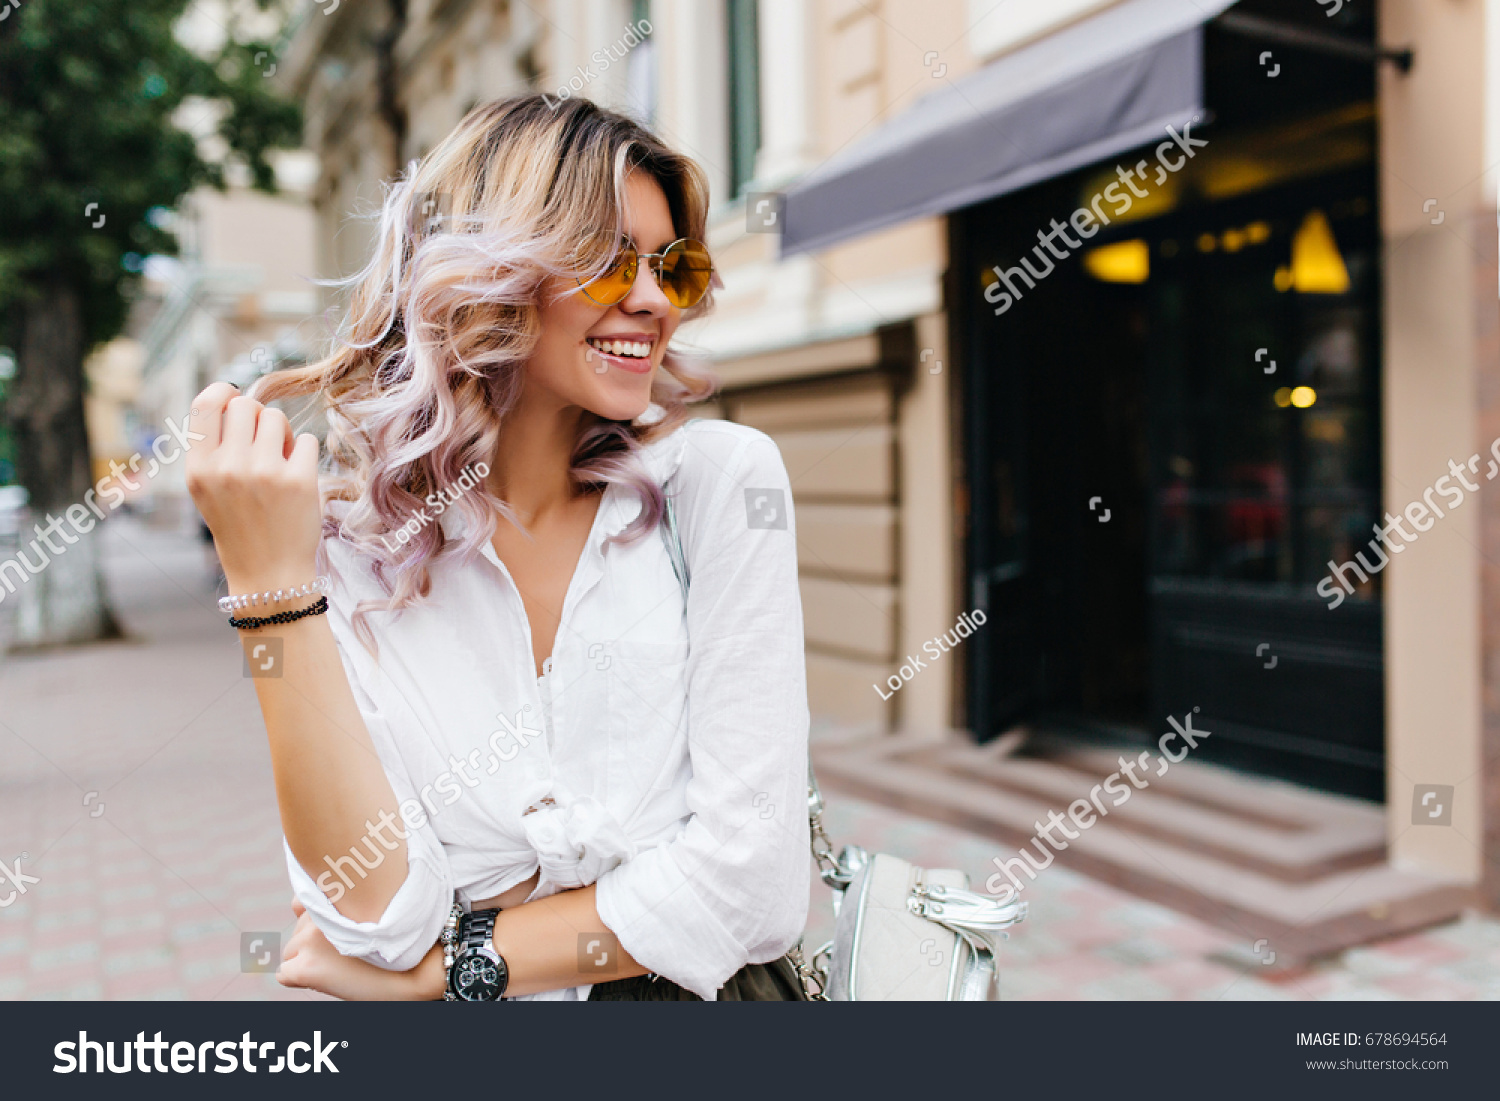 dating really cute girl In france, it's very common for a girl to go out to dinner with a male friend i guess since there is no set protocol, french women are pretty.